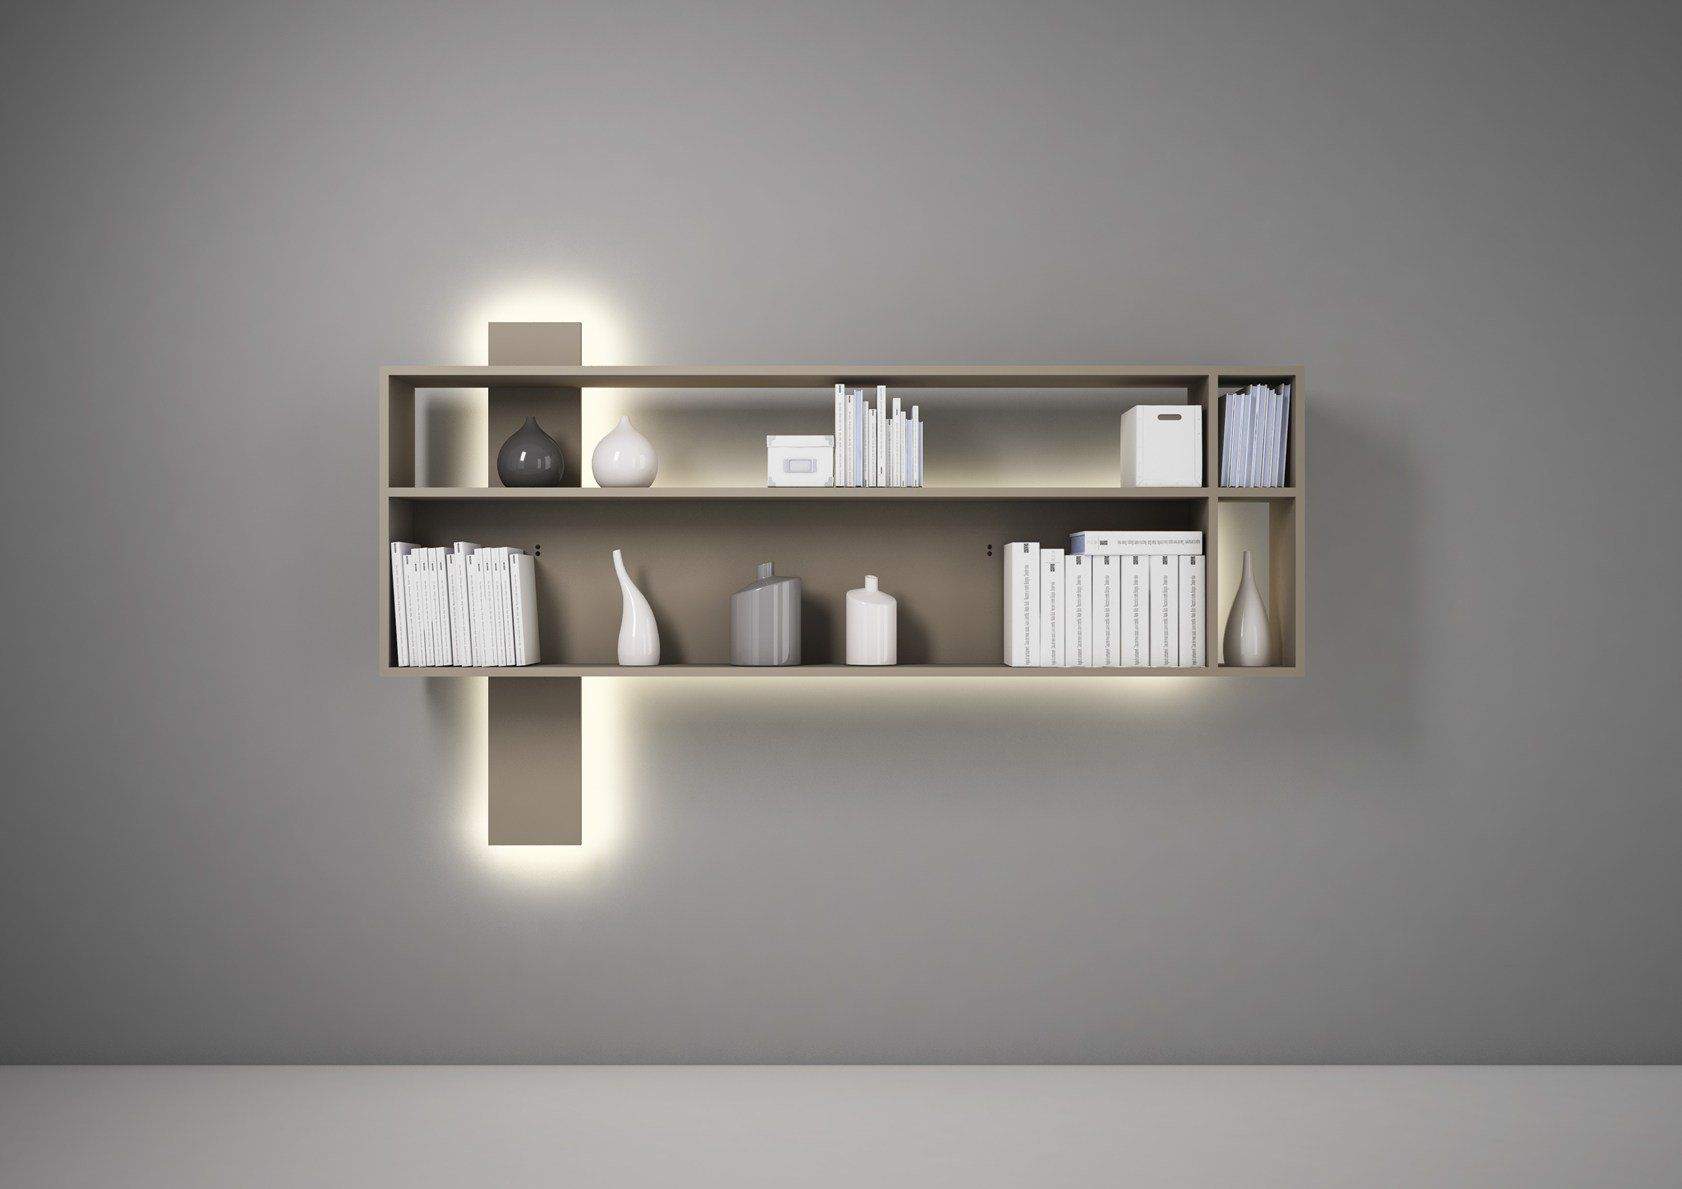 Librerie Sospese A Muro. Cool Mensole With Librerie Sospese A Muro ...